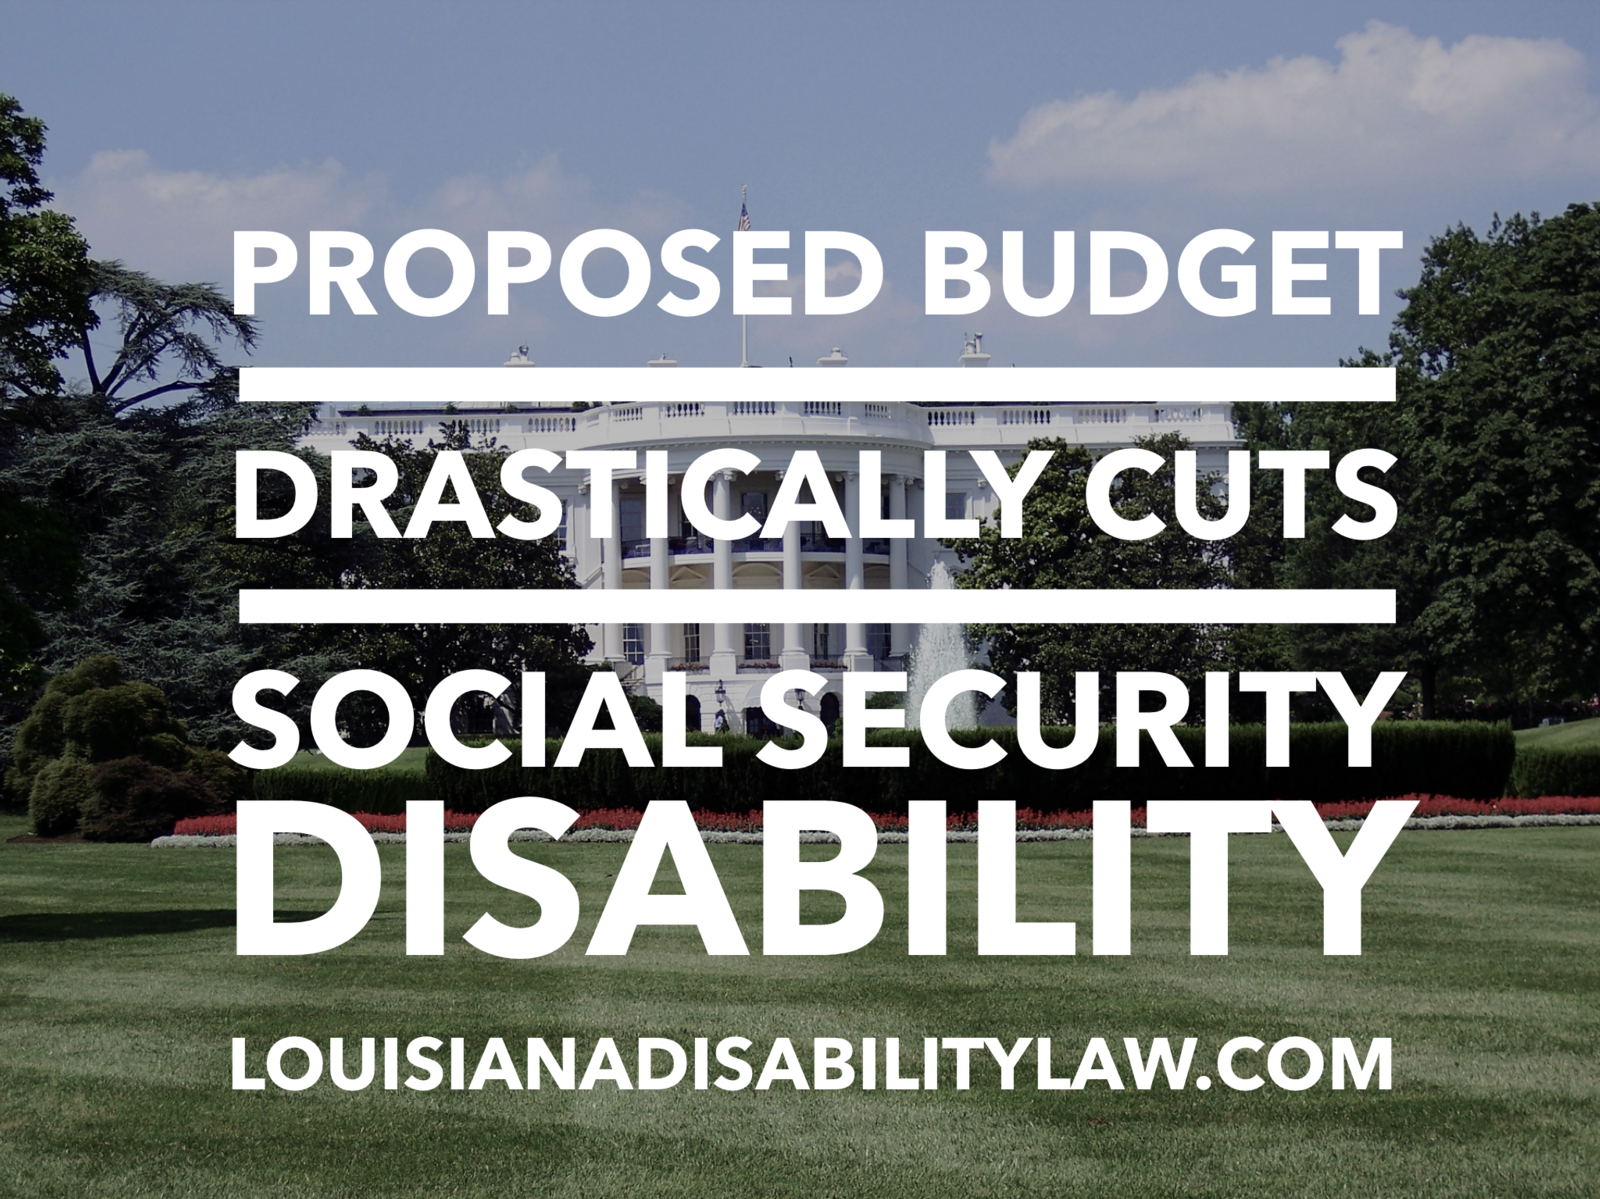 Proposed budget drastically cuts Social Security Disability